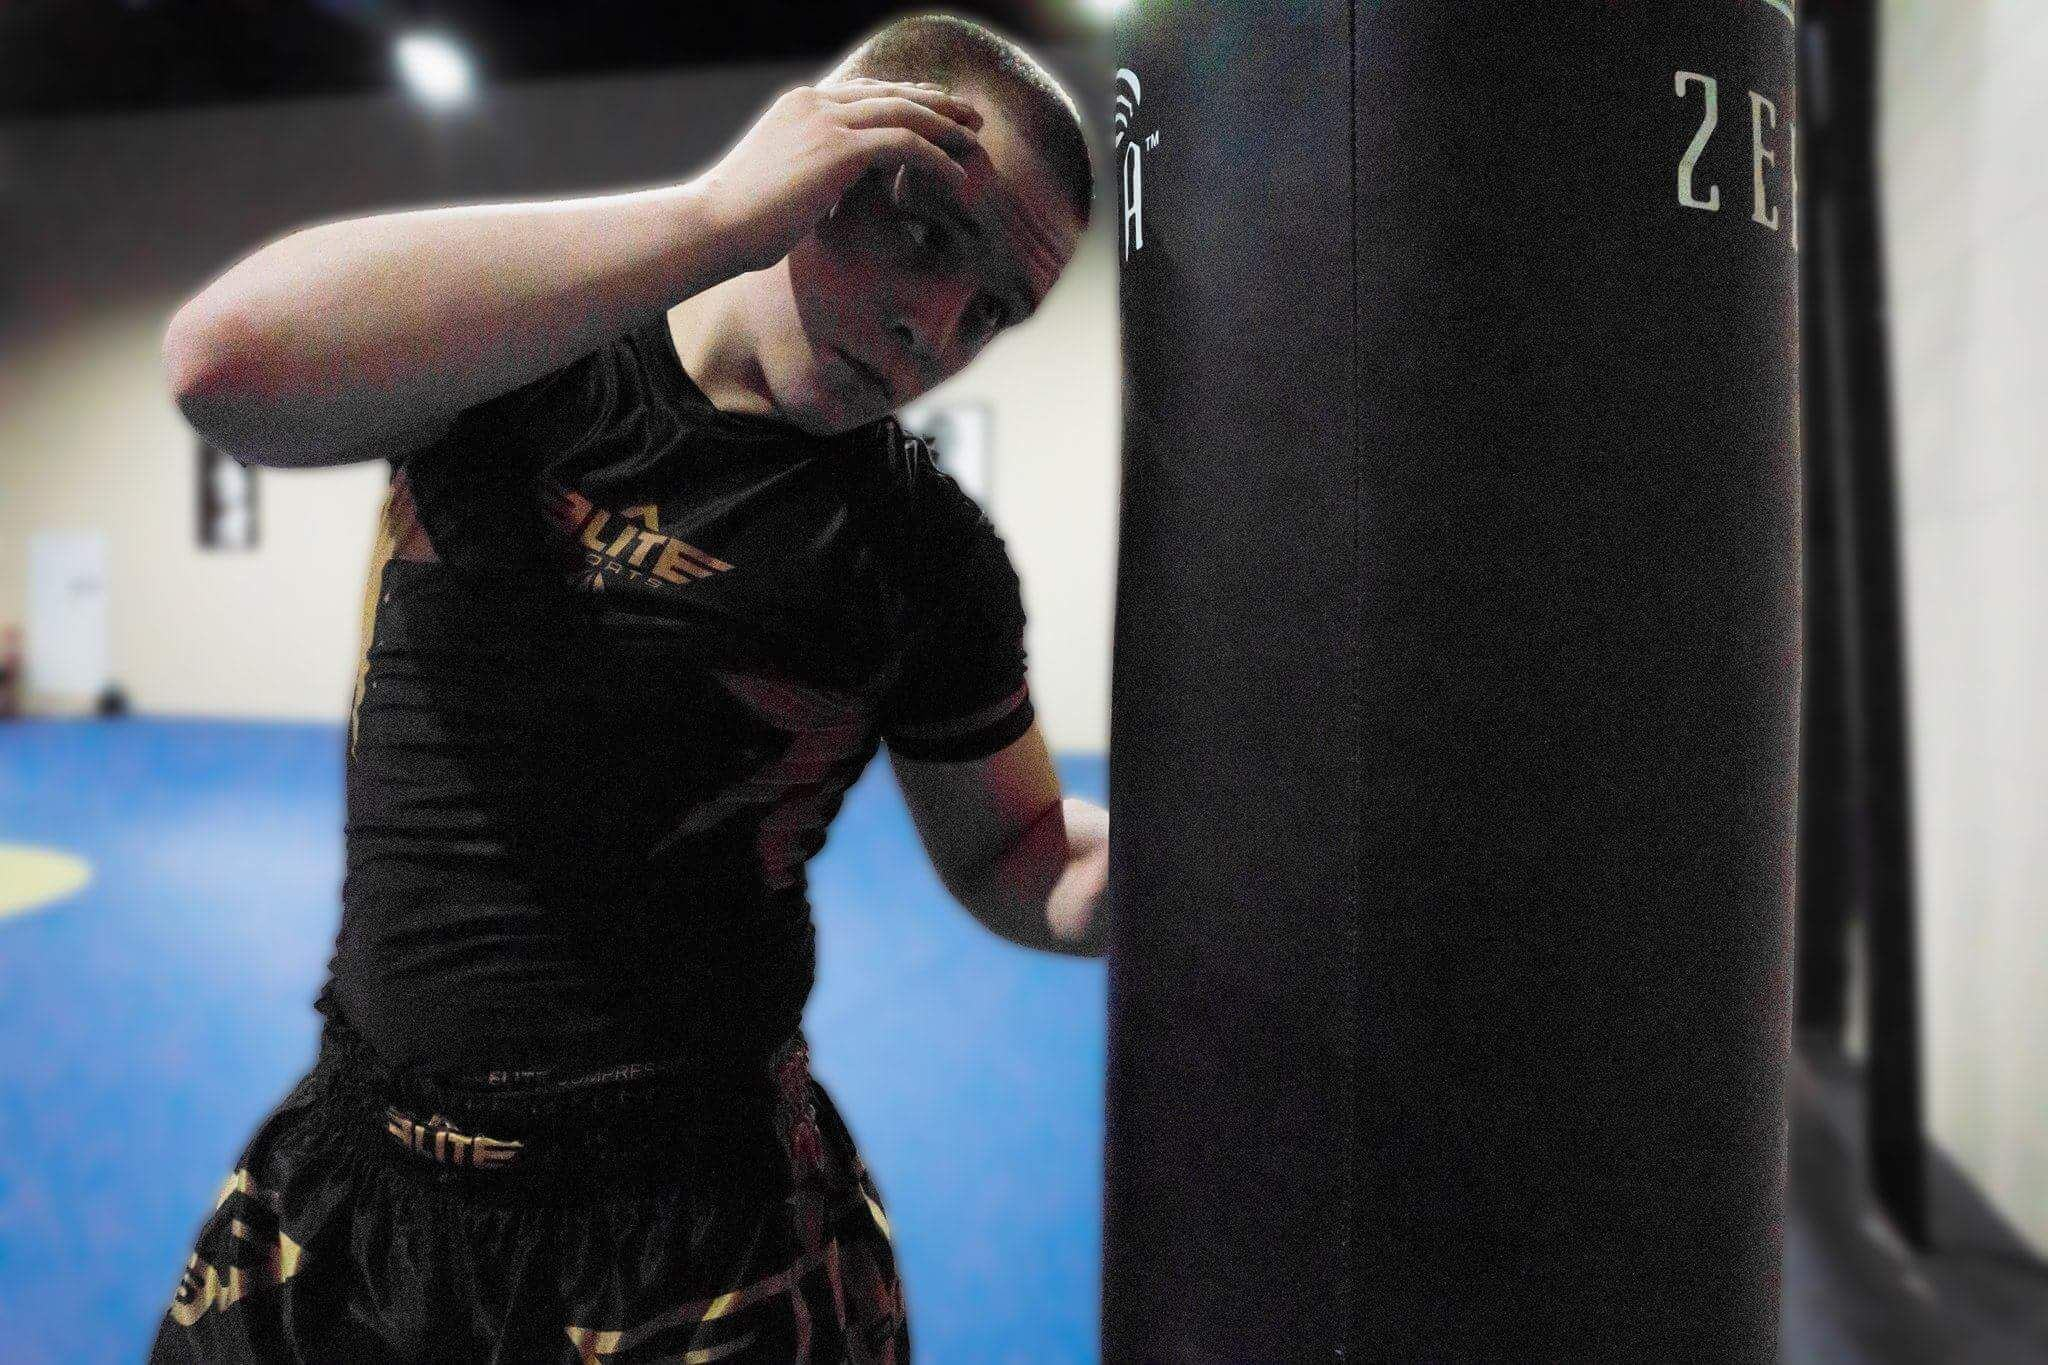 Elite-sports-Team-Elite-Muay Thai-Daniel-Peet-image11.jpeg